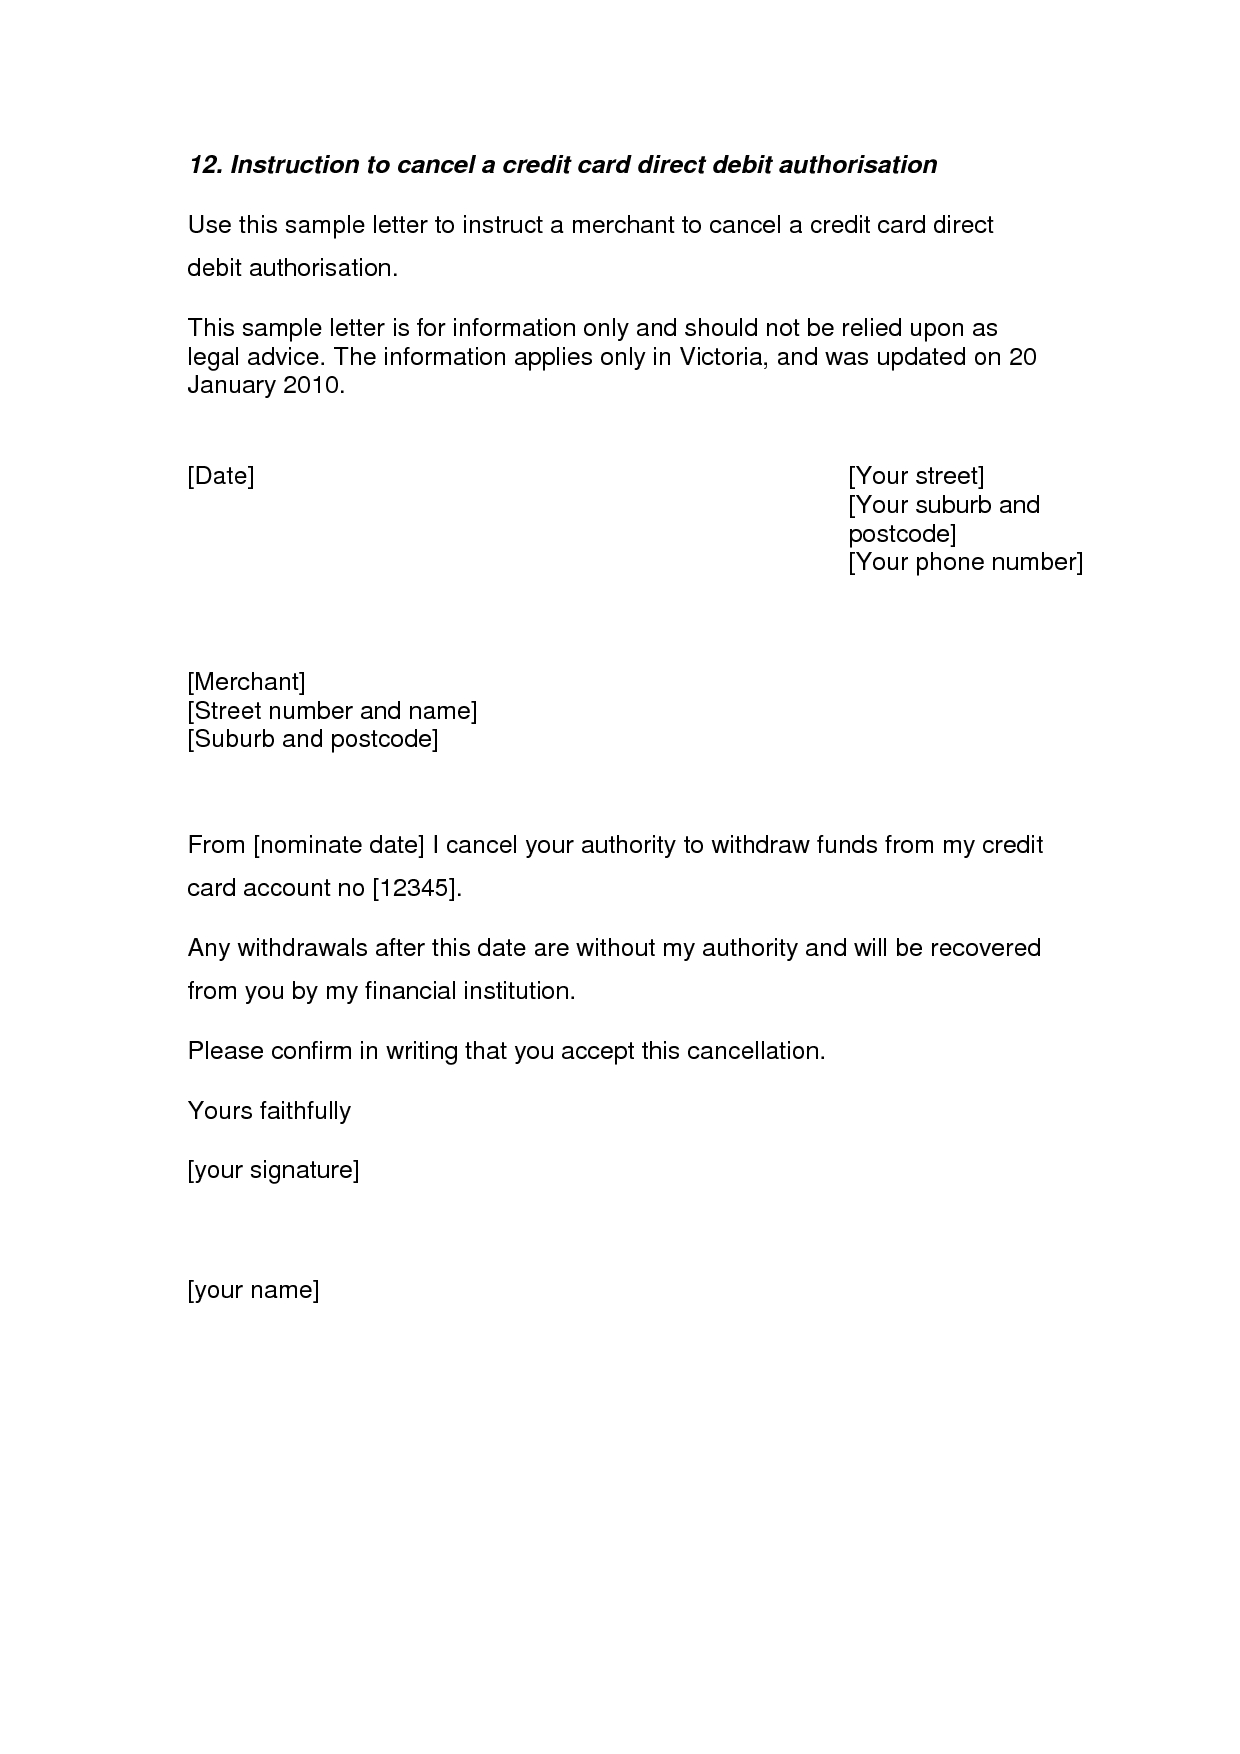 Cancel Service Contract Letter Template - Credit Card Cancellation Letter A Credit Card Cancellation Letter